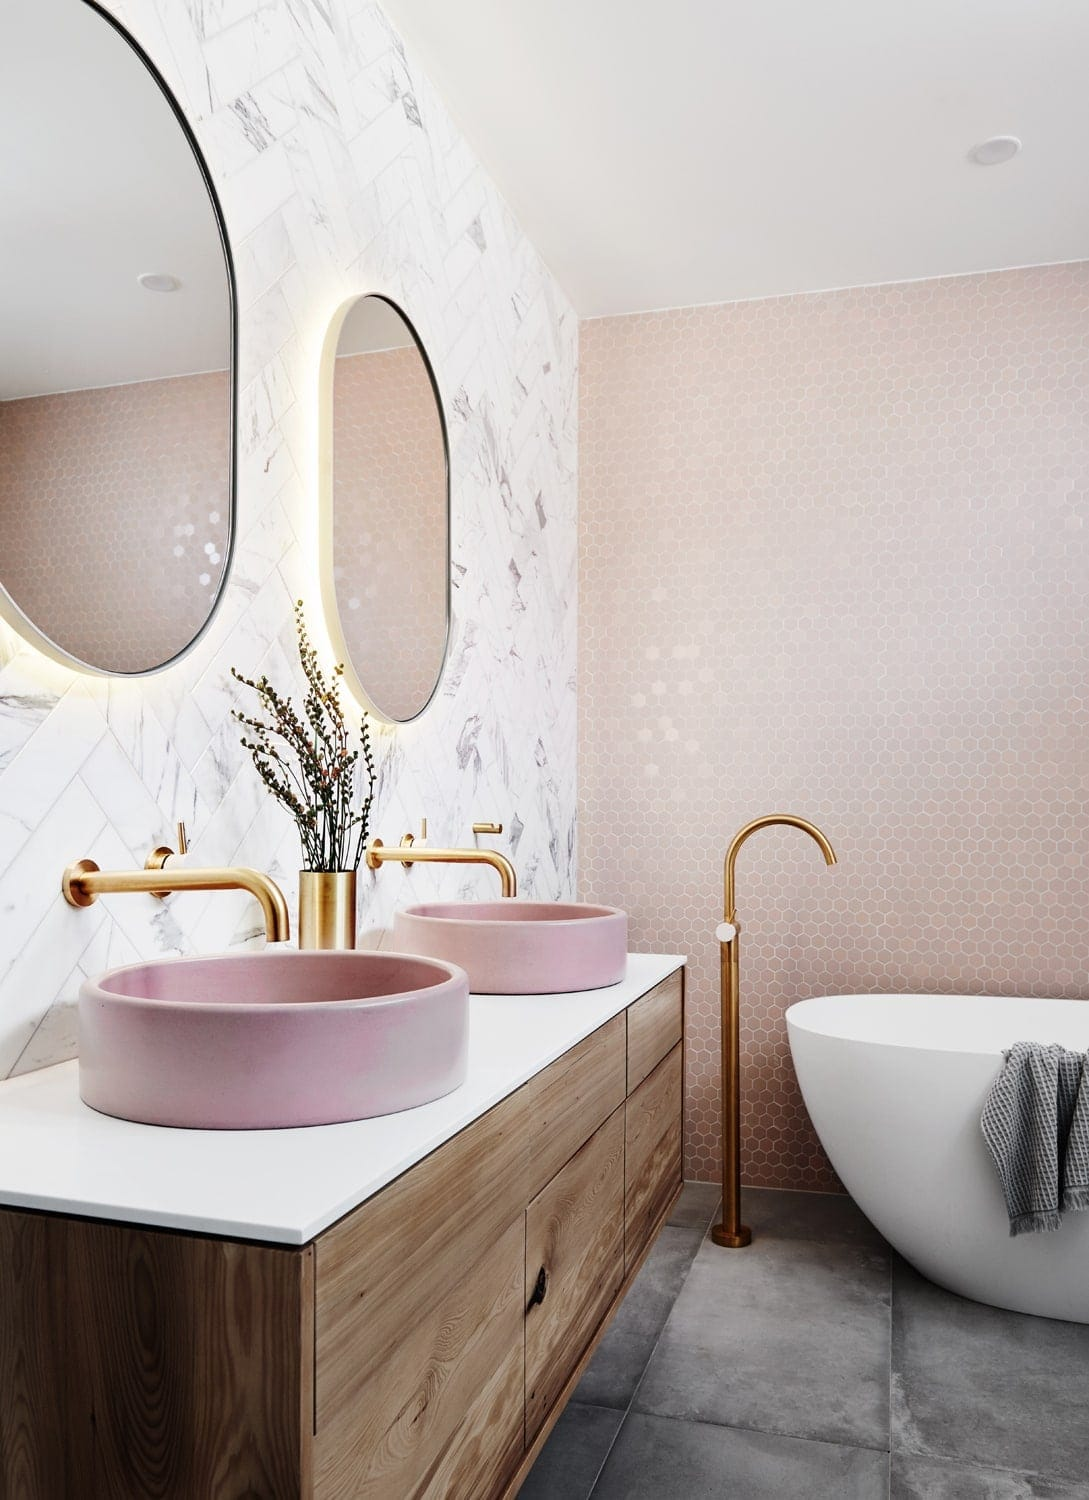 norsu interiors house pink bathroom vanity